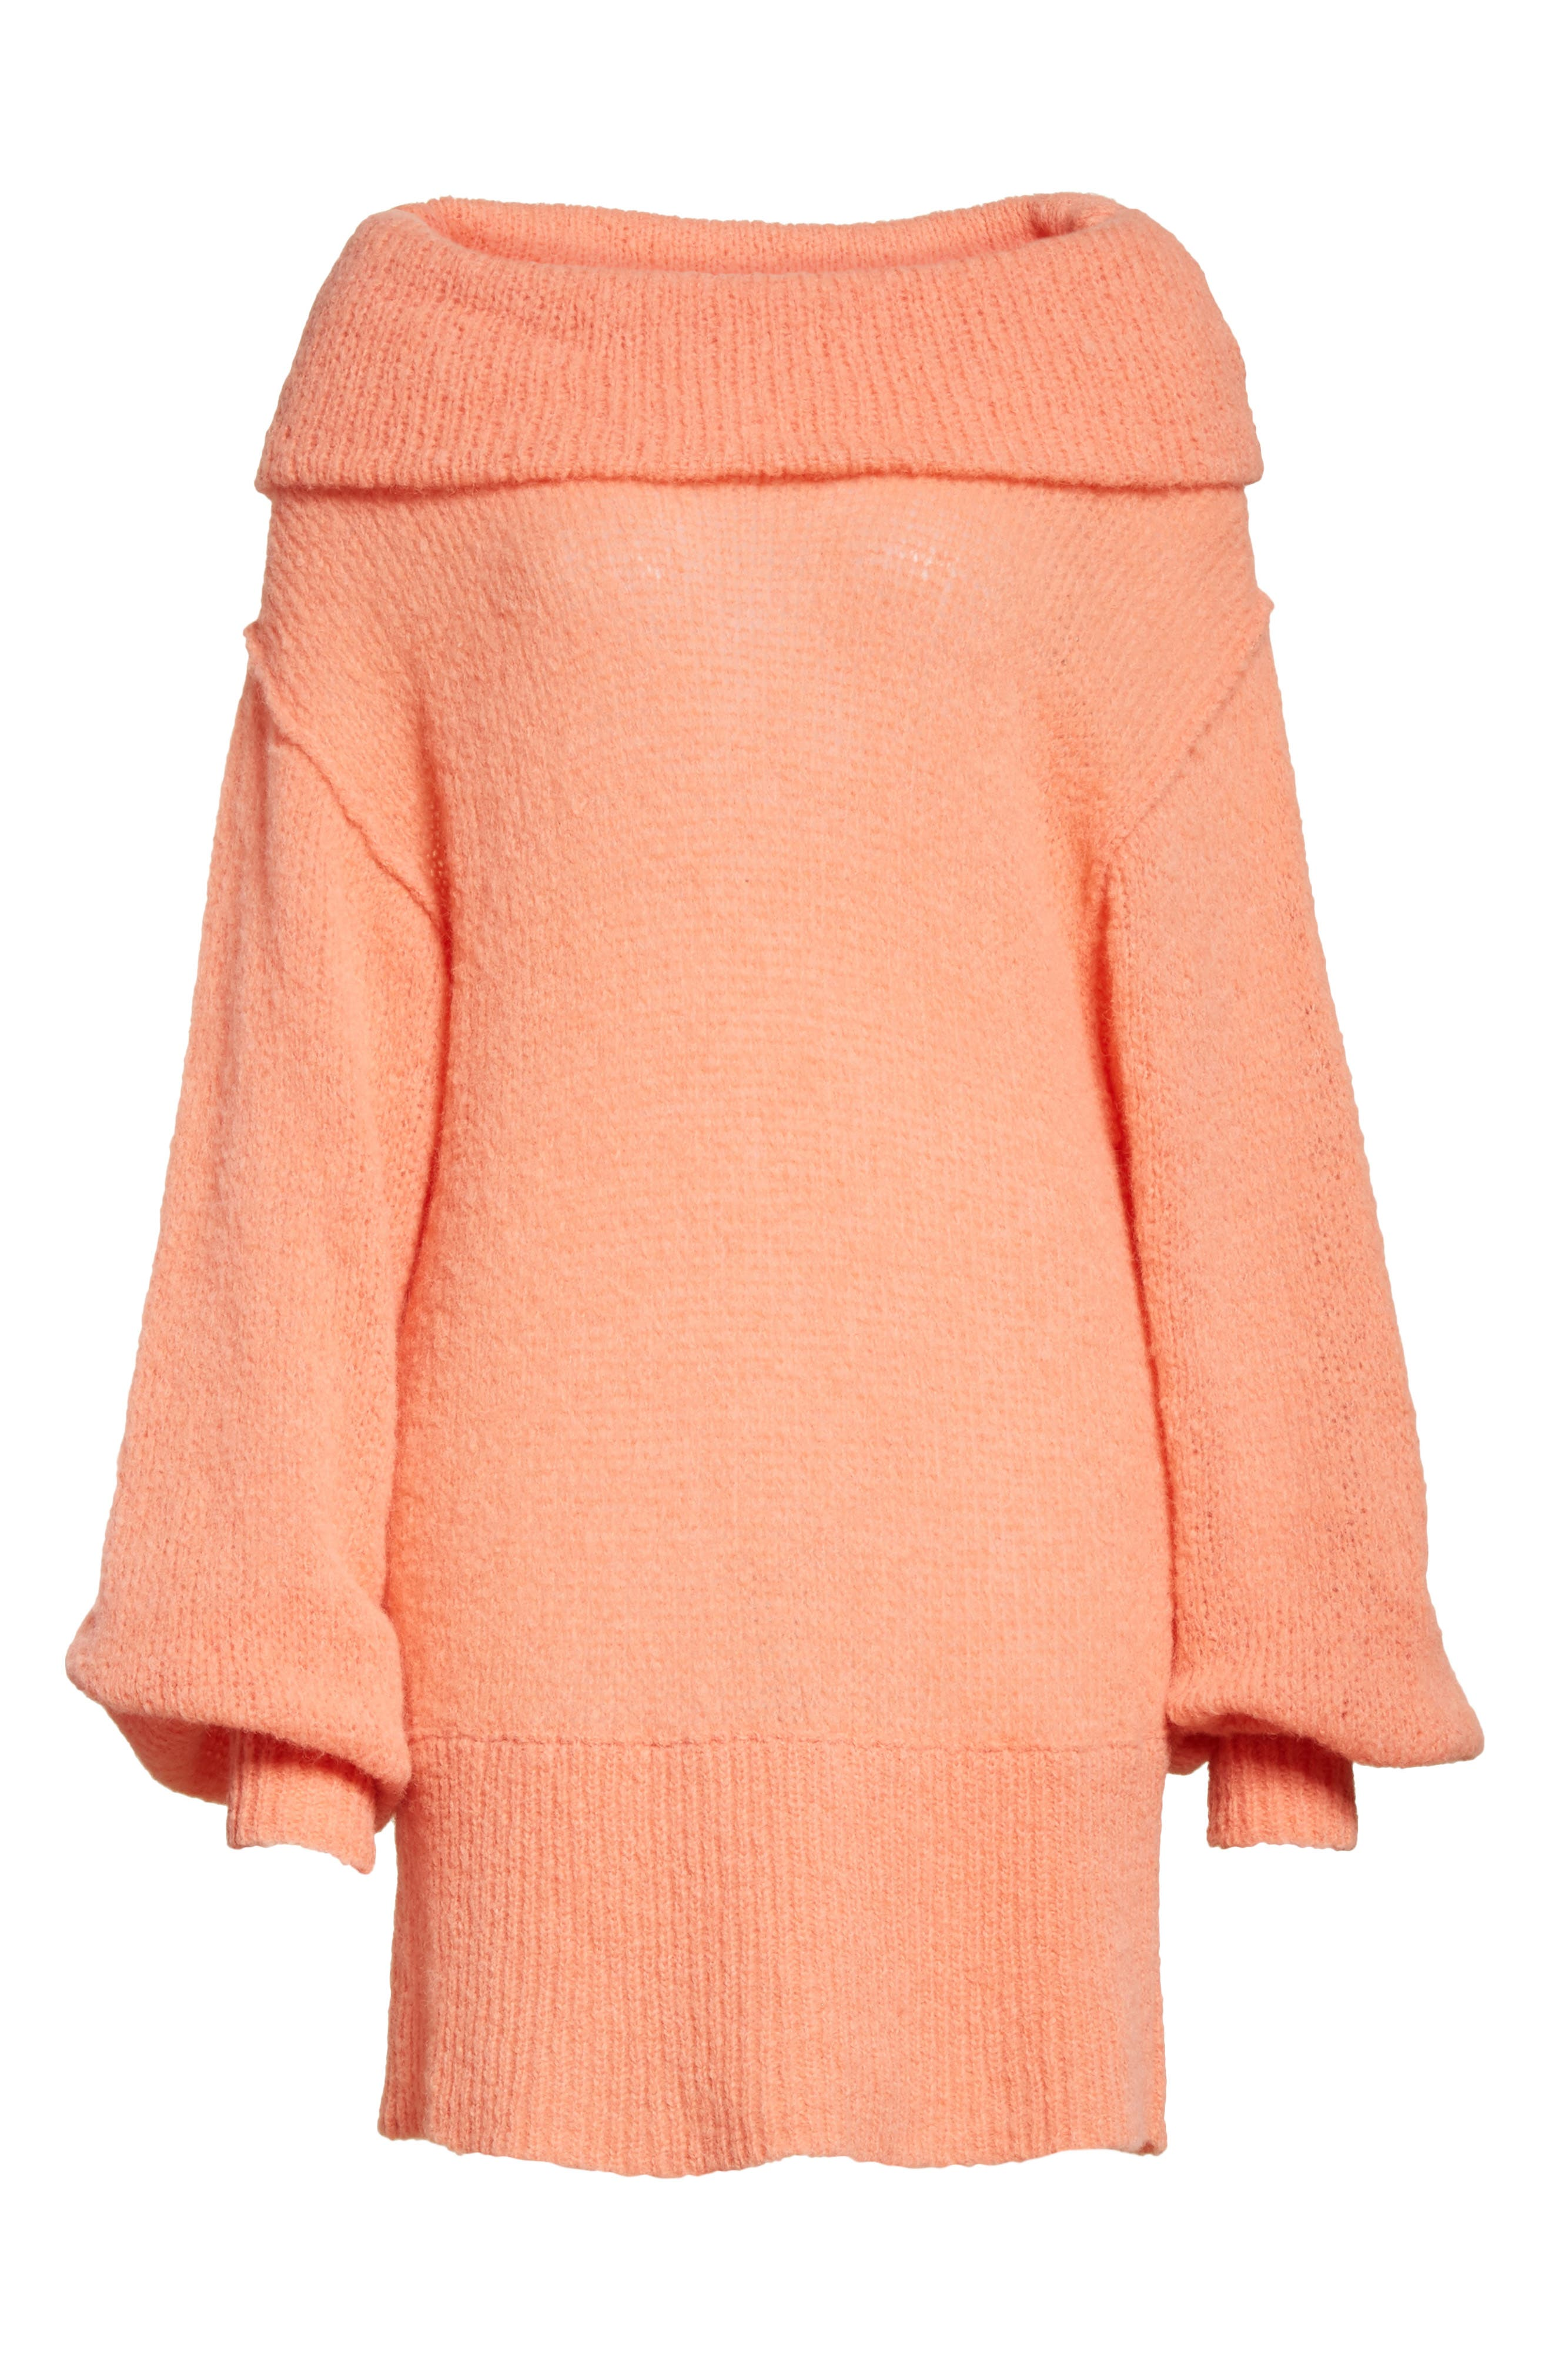 Ophelia Off the Shoulder Sweater,                             Alternate thumbnail 12, color,